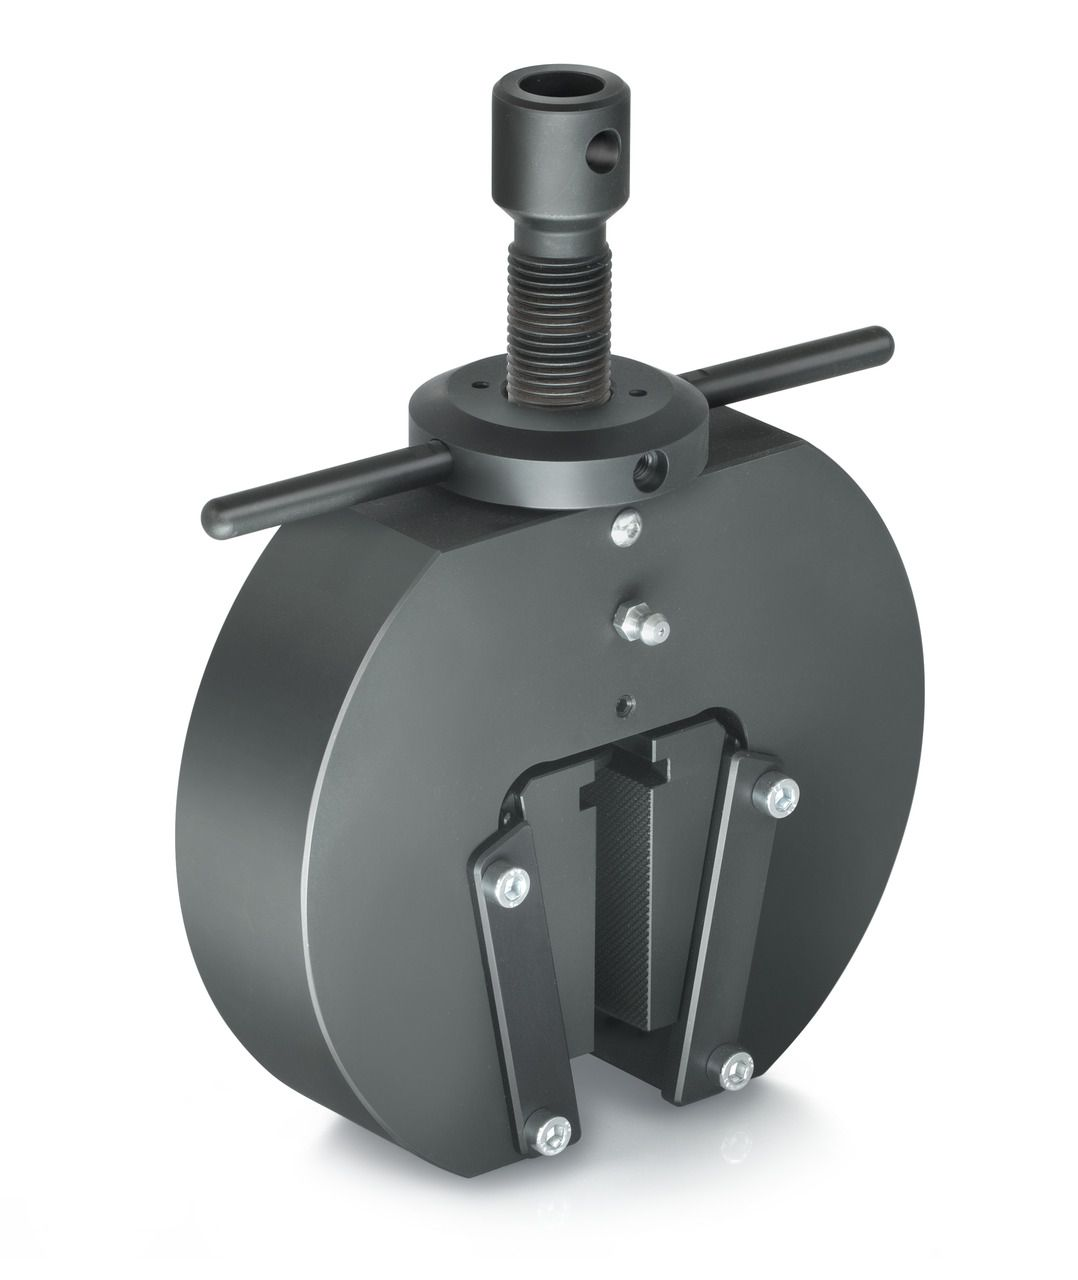 AD 9100 Wedge Tension Clamp